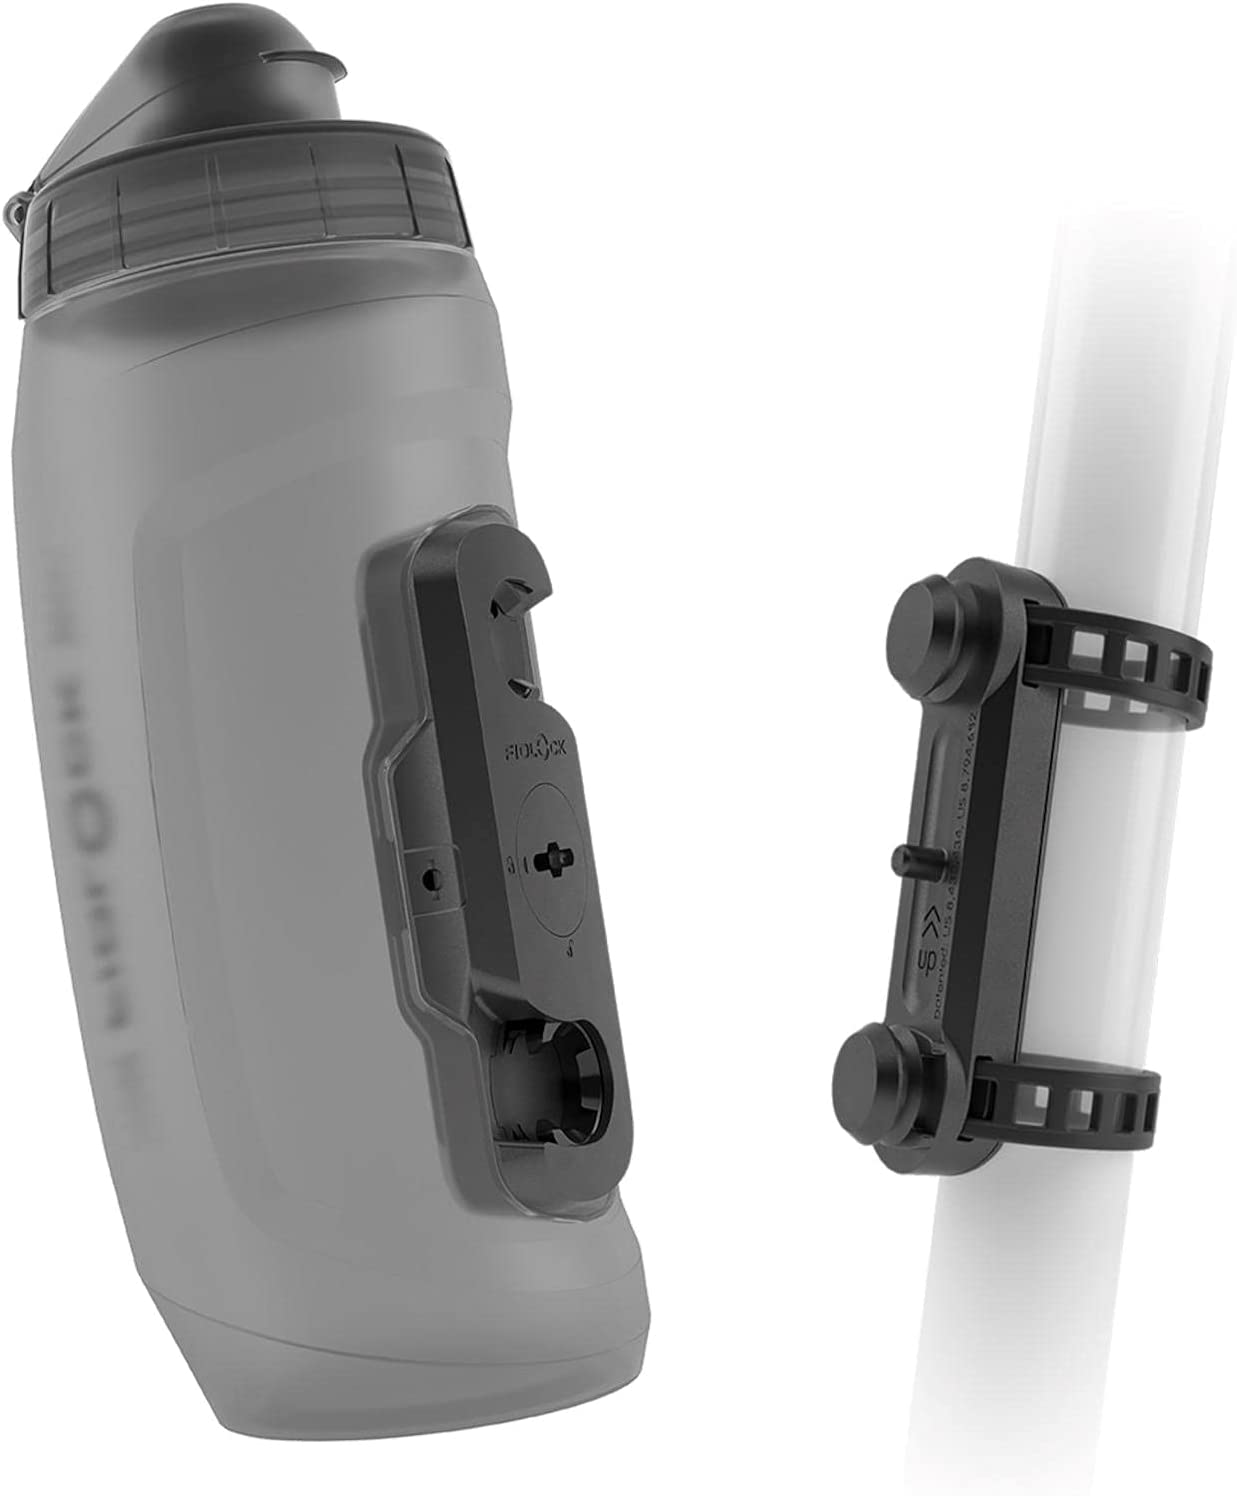 FIDLOCK Twist Bottle 590 Set- Cheap mail order specialty store Chicago Mall Water Bike with Atta Holder